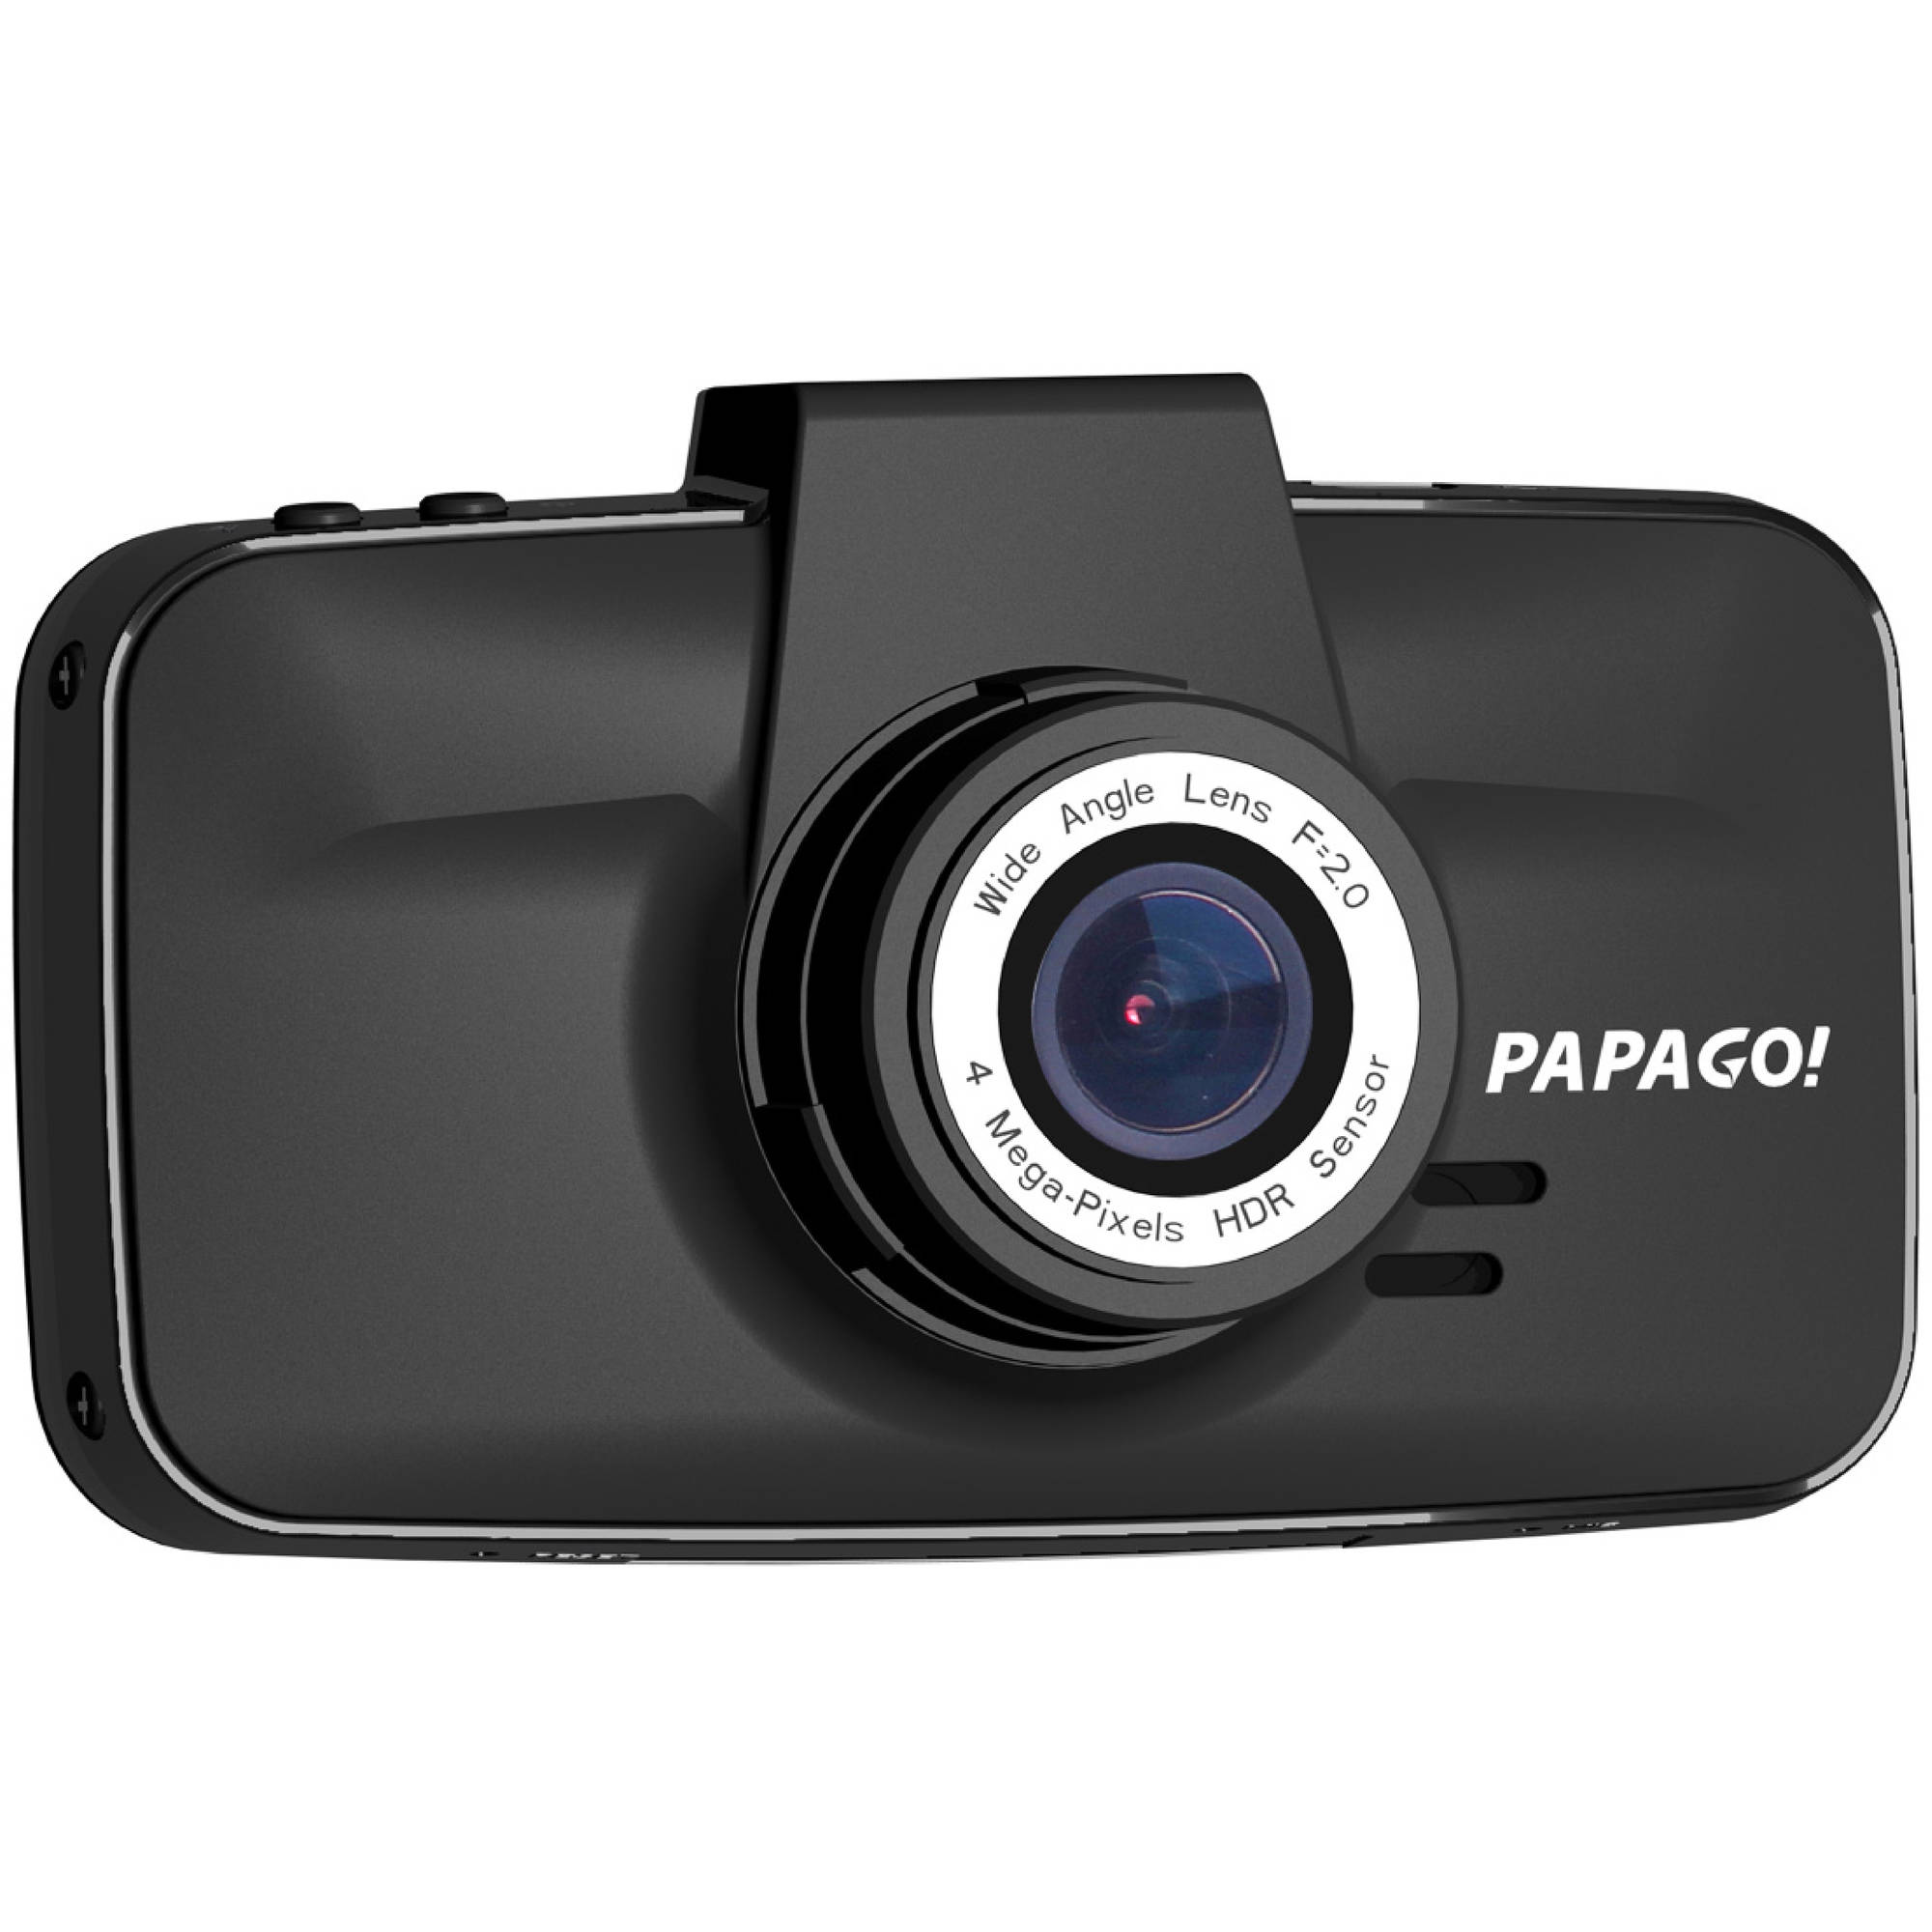 PAPAGO GoSafe 520 Super HD 2304x1296 Dash Cam Car DVR Dashboard Camera Video Recorder with Suction Mount, Superior Night Vision, Parking Monitor, G-Sensor, Black